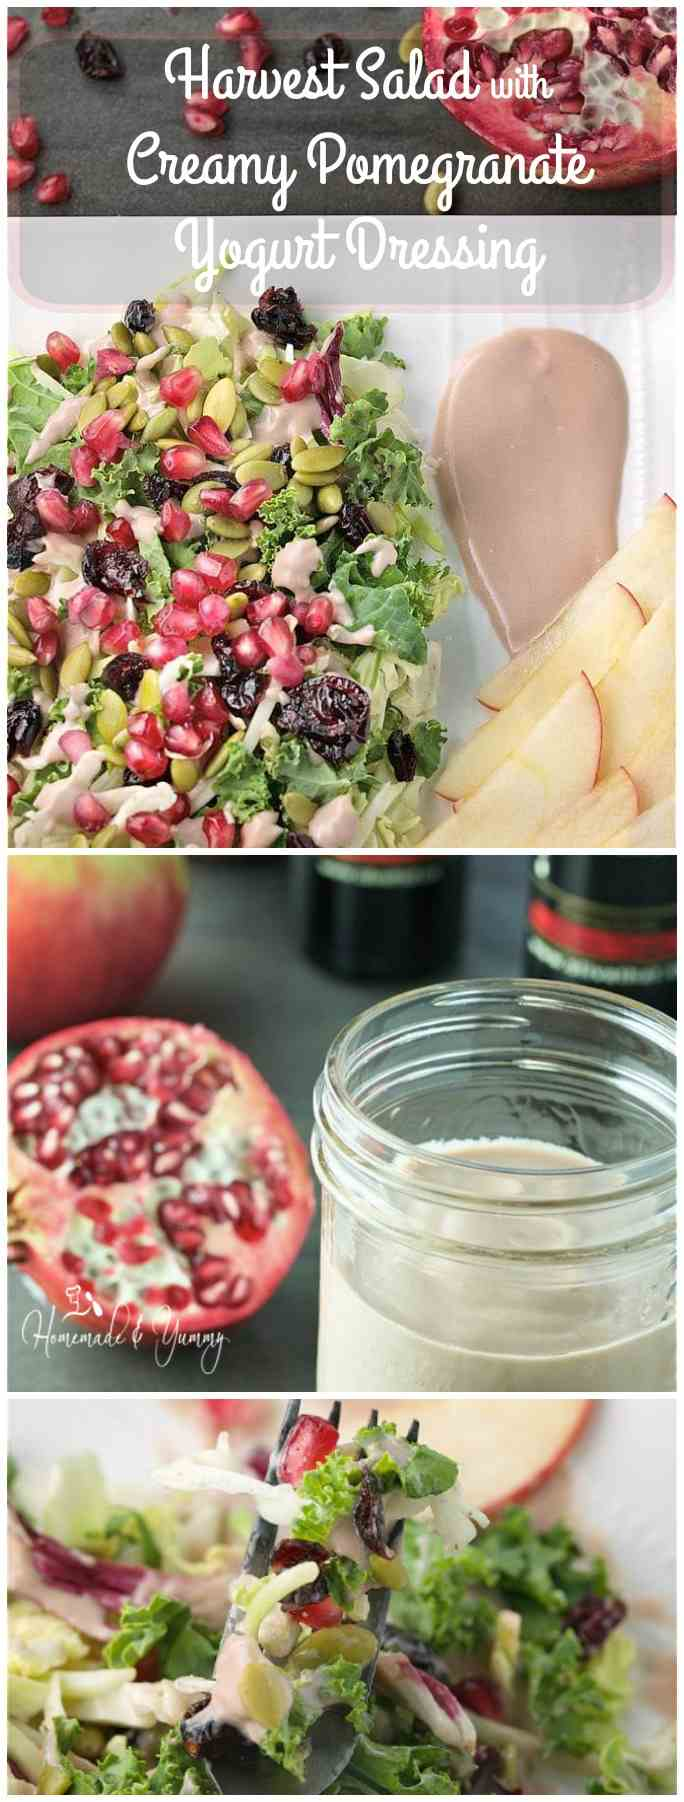 Harvest Salad with Creamy Pomegranate Yogurt Dressing long pin image.